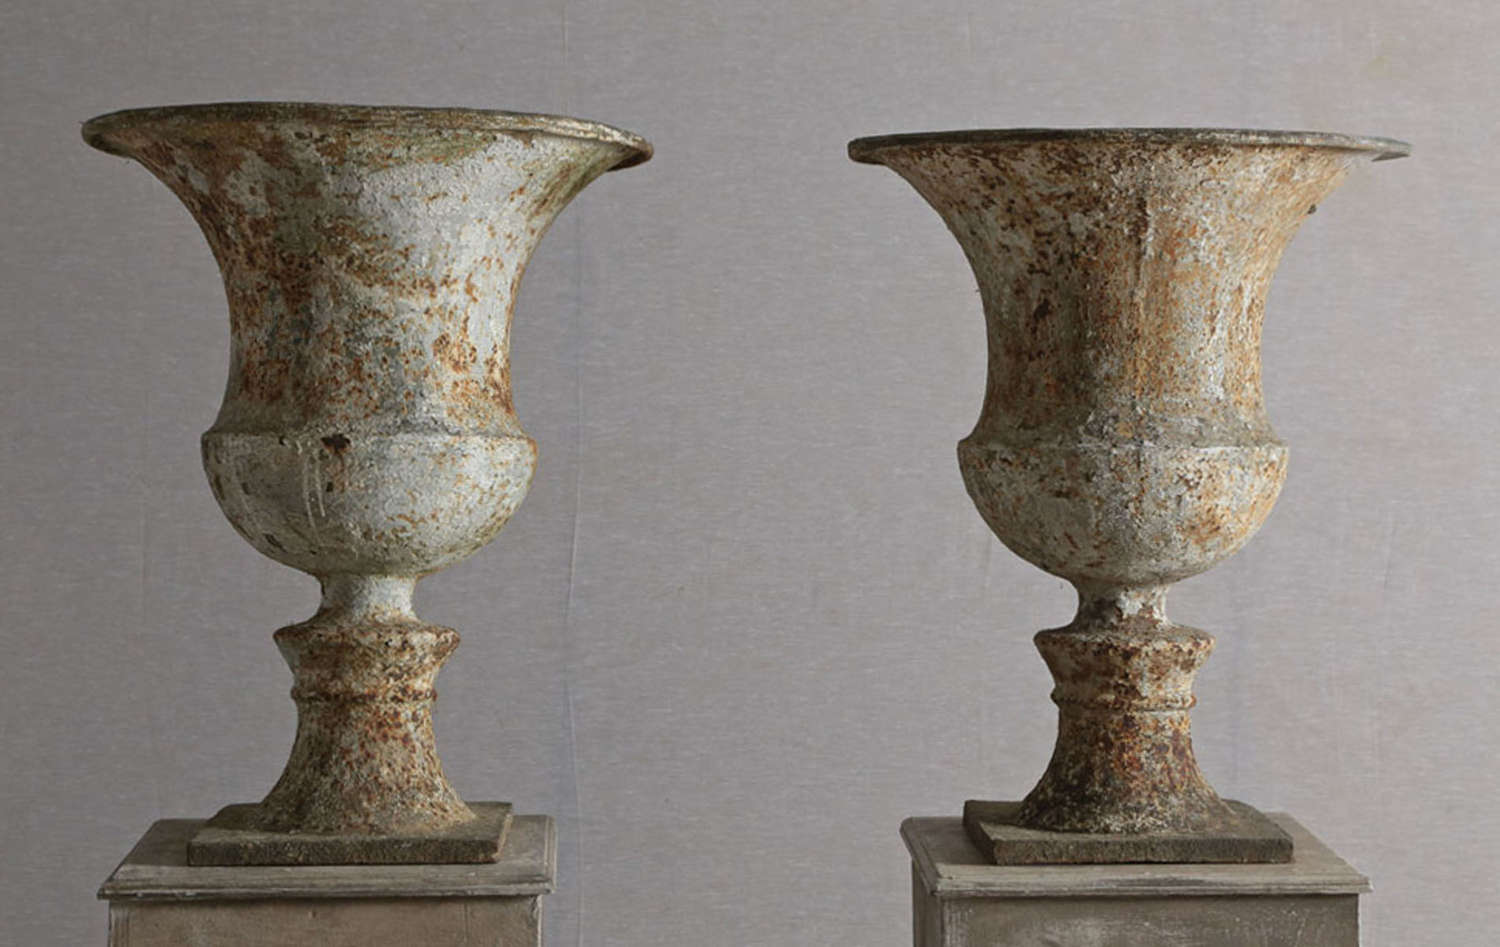 Pair of 18th century English cast iron urns